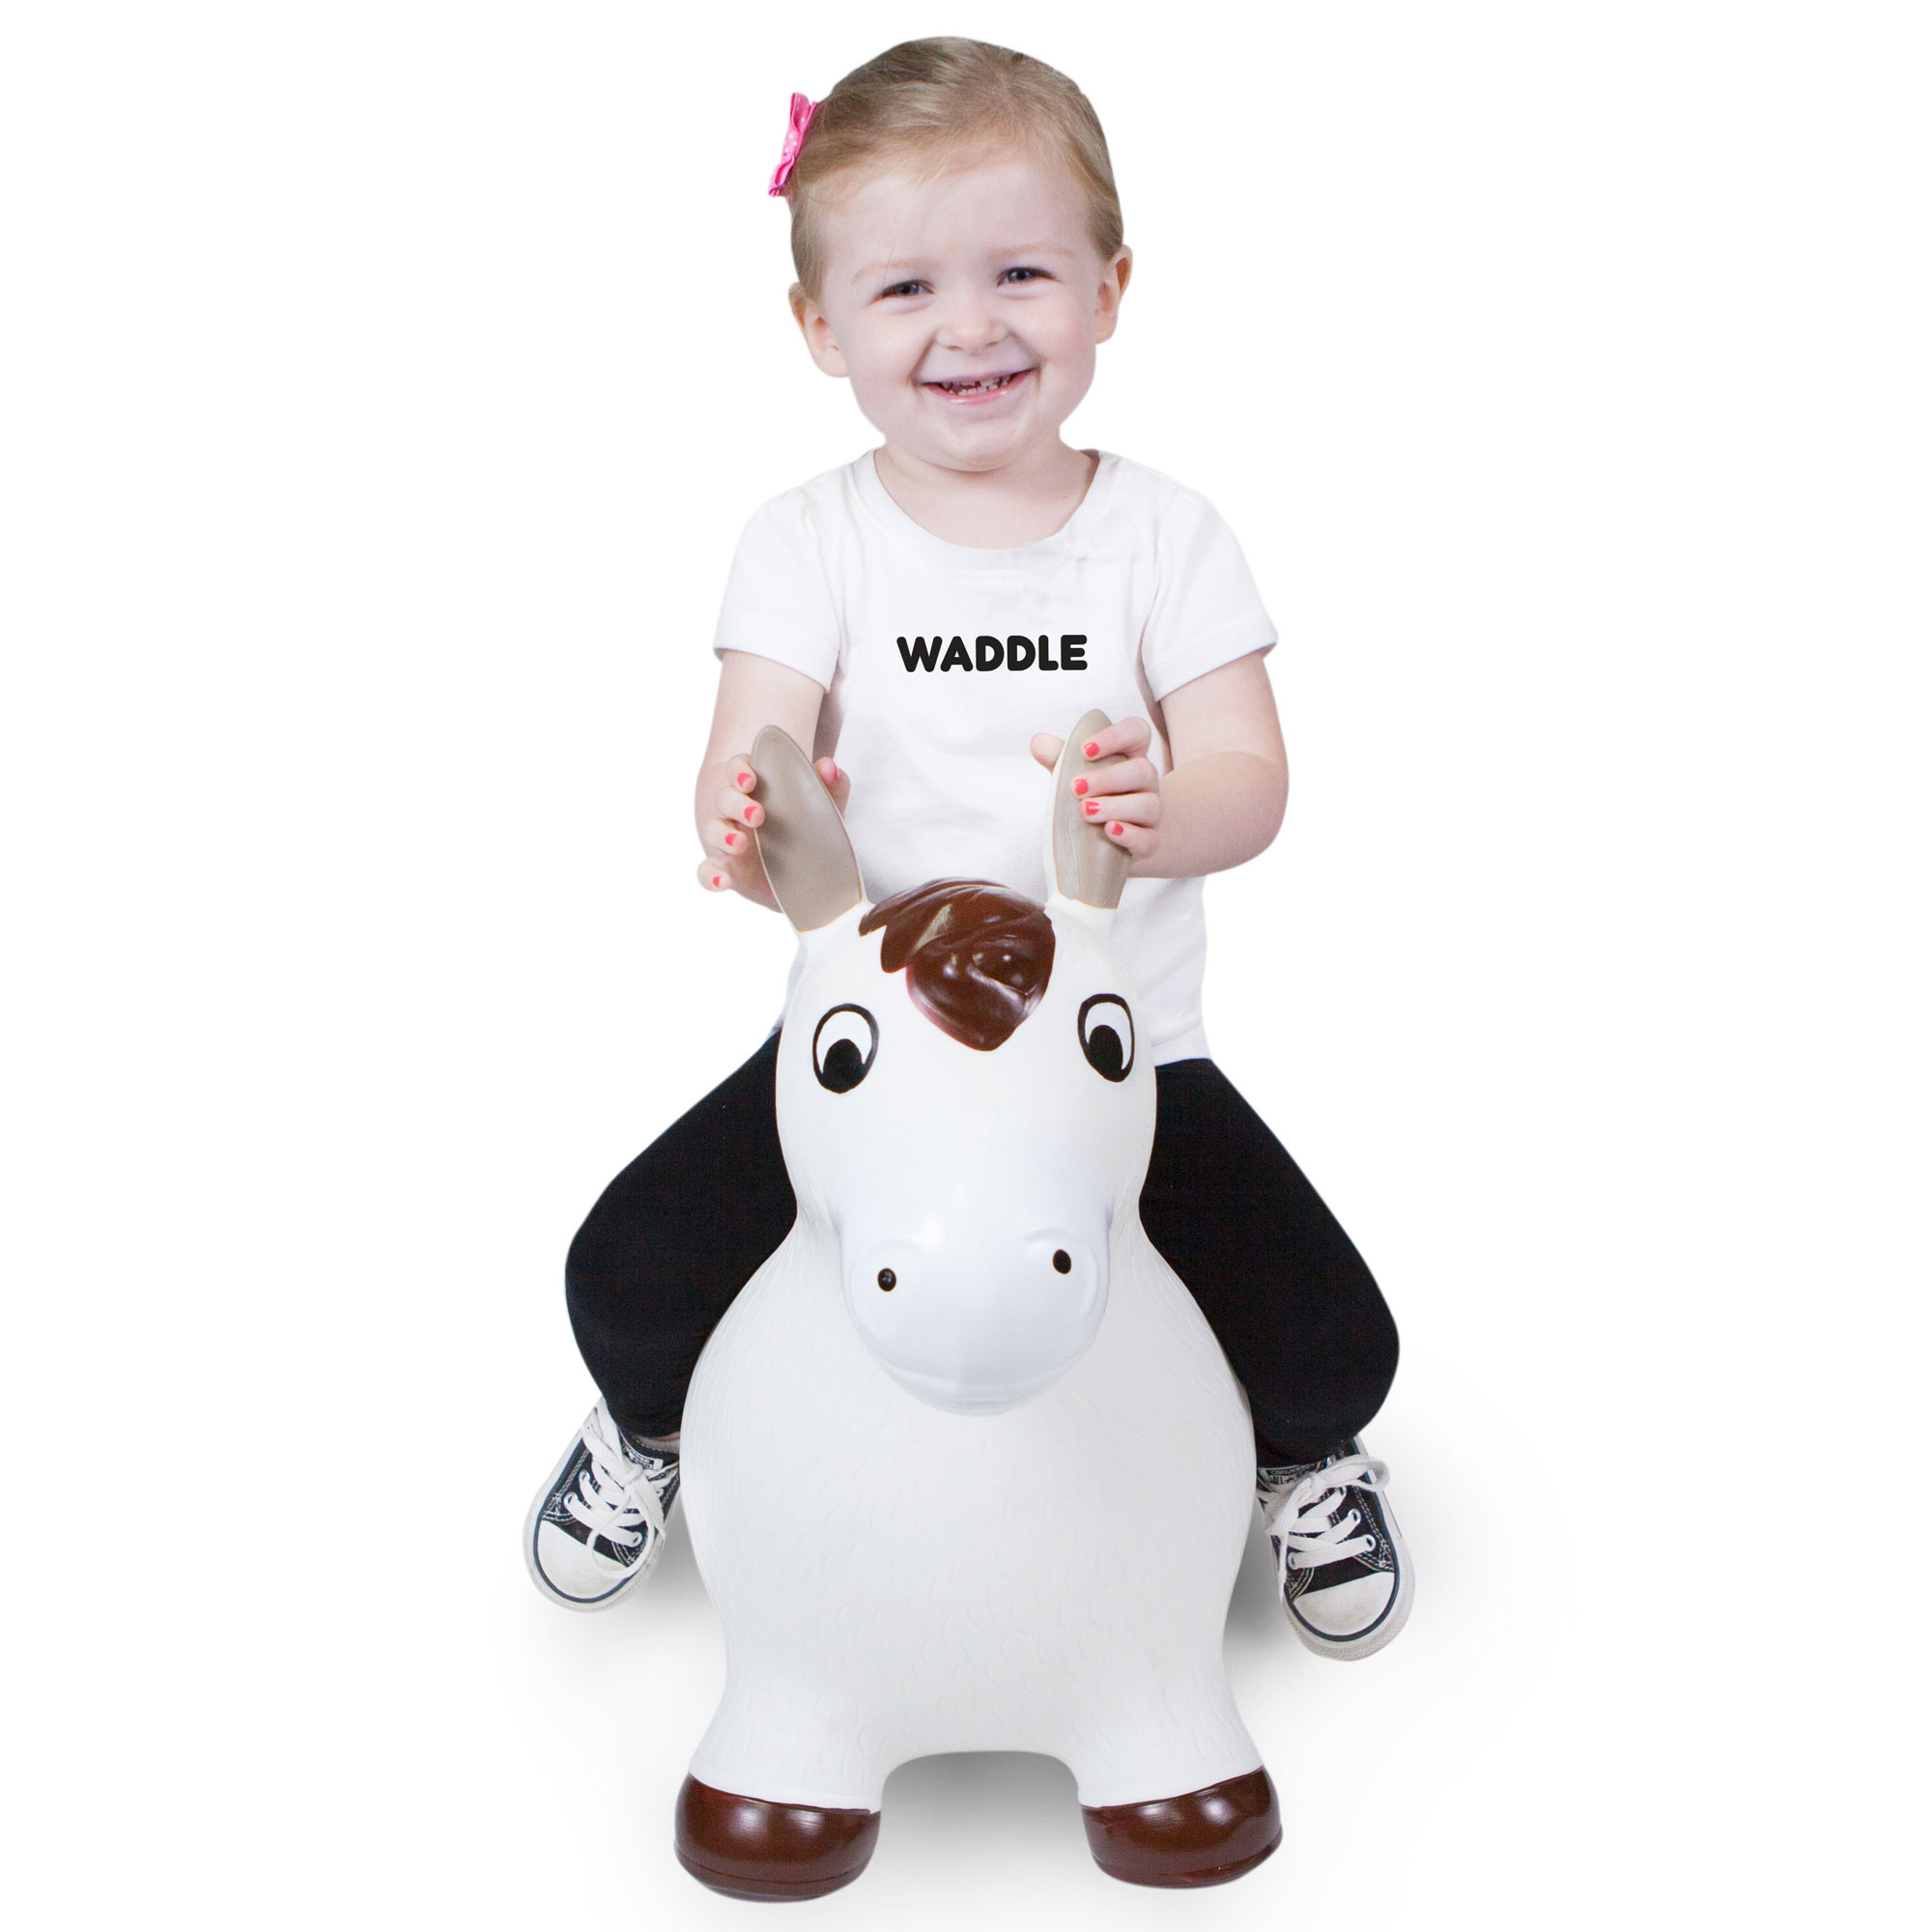 Waddle Unisex Ride On Toy Horse Bouncy | Best Kids Gift | Hopping Farm Animal Hopper |... by WADDLE